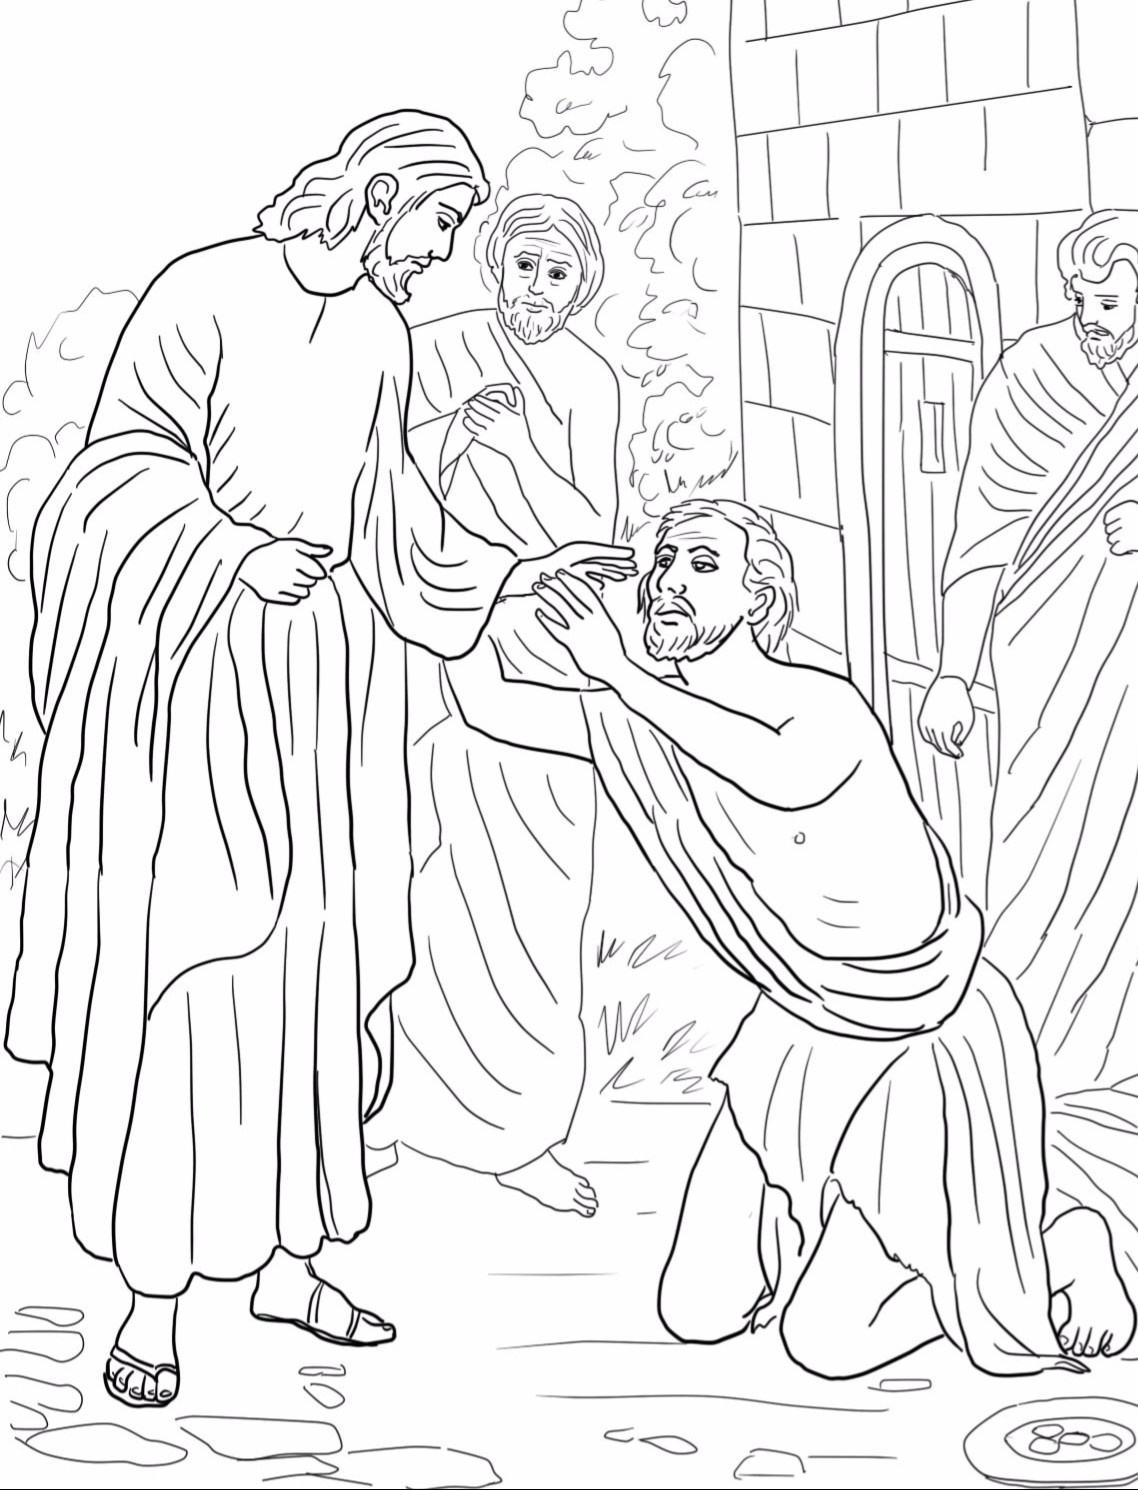 Jesus heals paralytic man page coloring pages for Jesus heals a paralytic coloring page